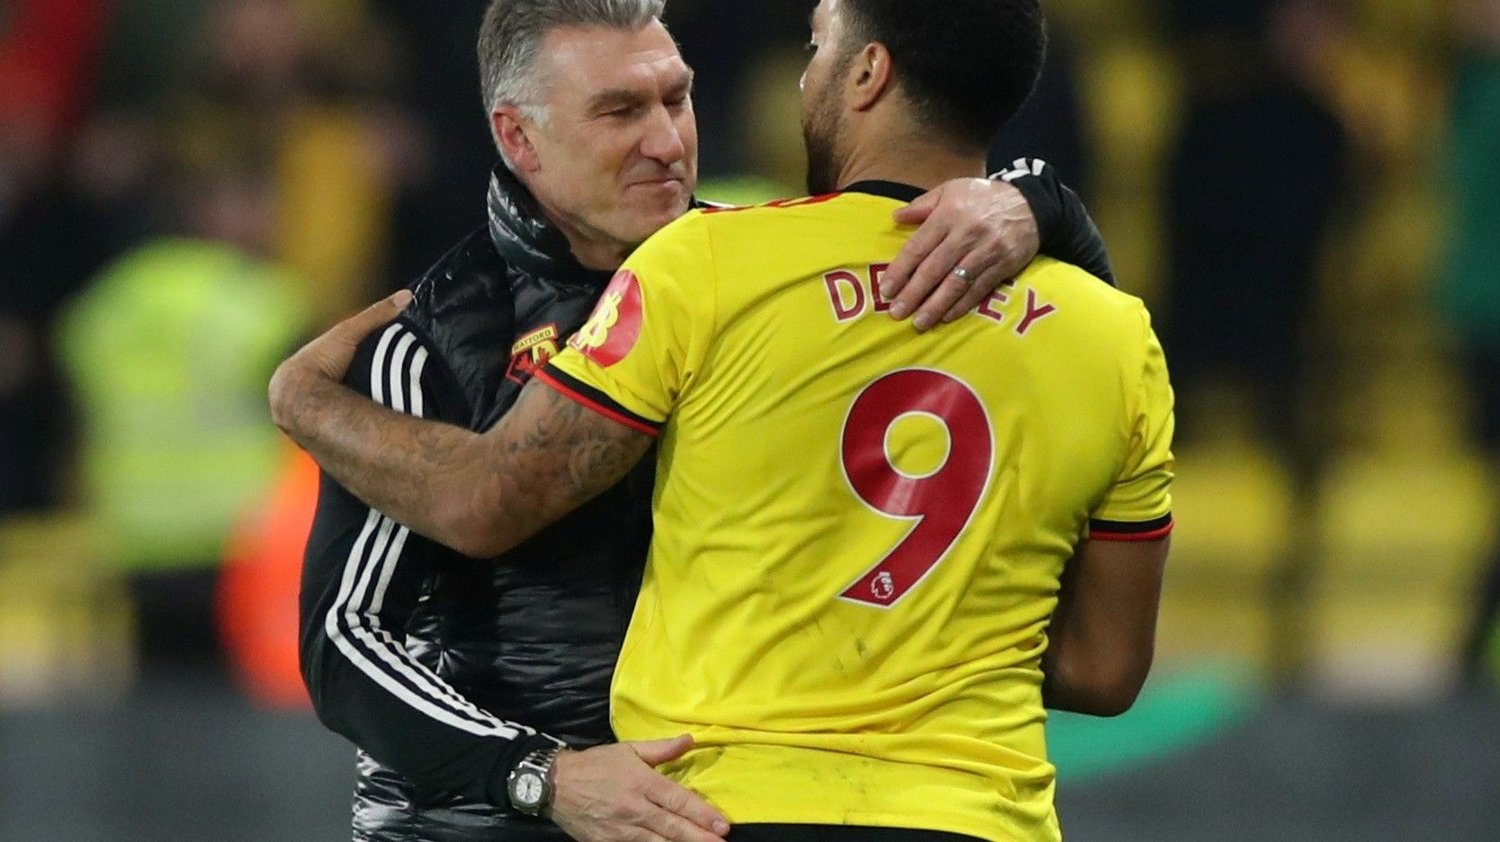 Soccer Football - Premier League - Watford v Wolverhampton Wanderers - Vicarage Road, Watford, Britain - January 1, 2020 Watford manager Nigel Pearson with Troy Deeney after the match REUTERS/David Klein EDITORIAL USE ONLY. No use with unauthorized audio, video, data, fixture lists, club/league logos or